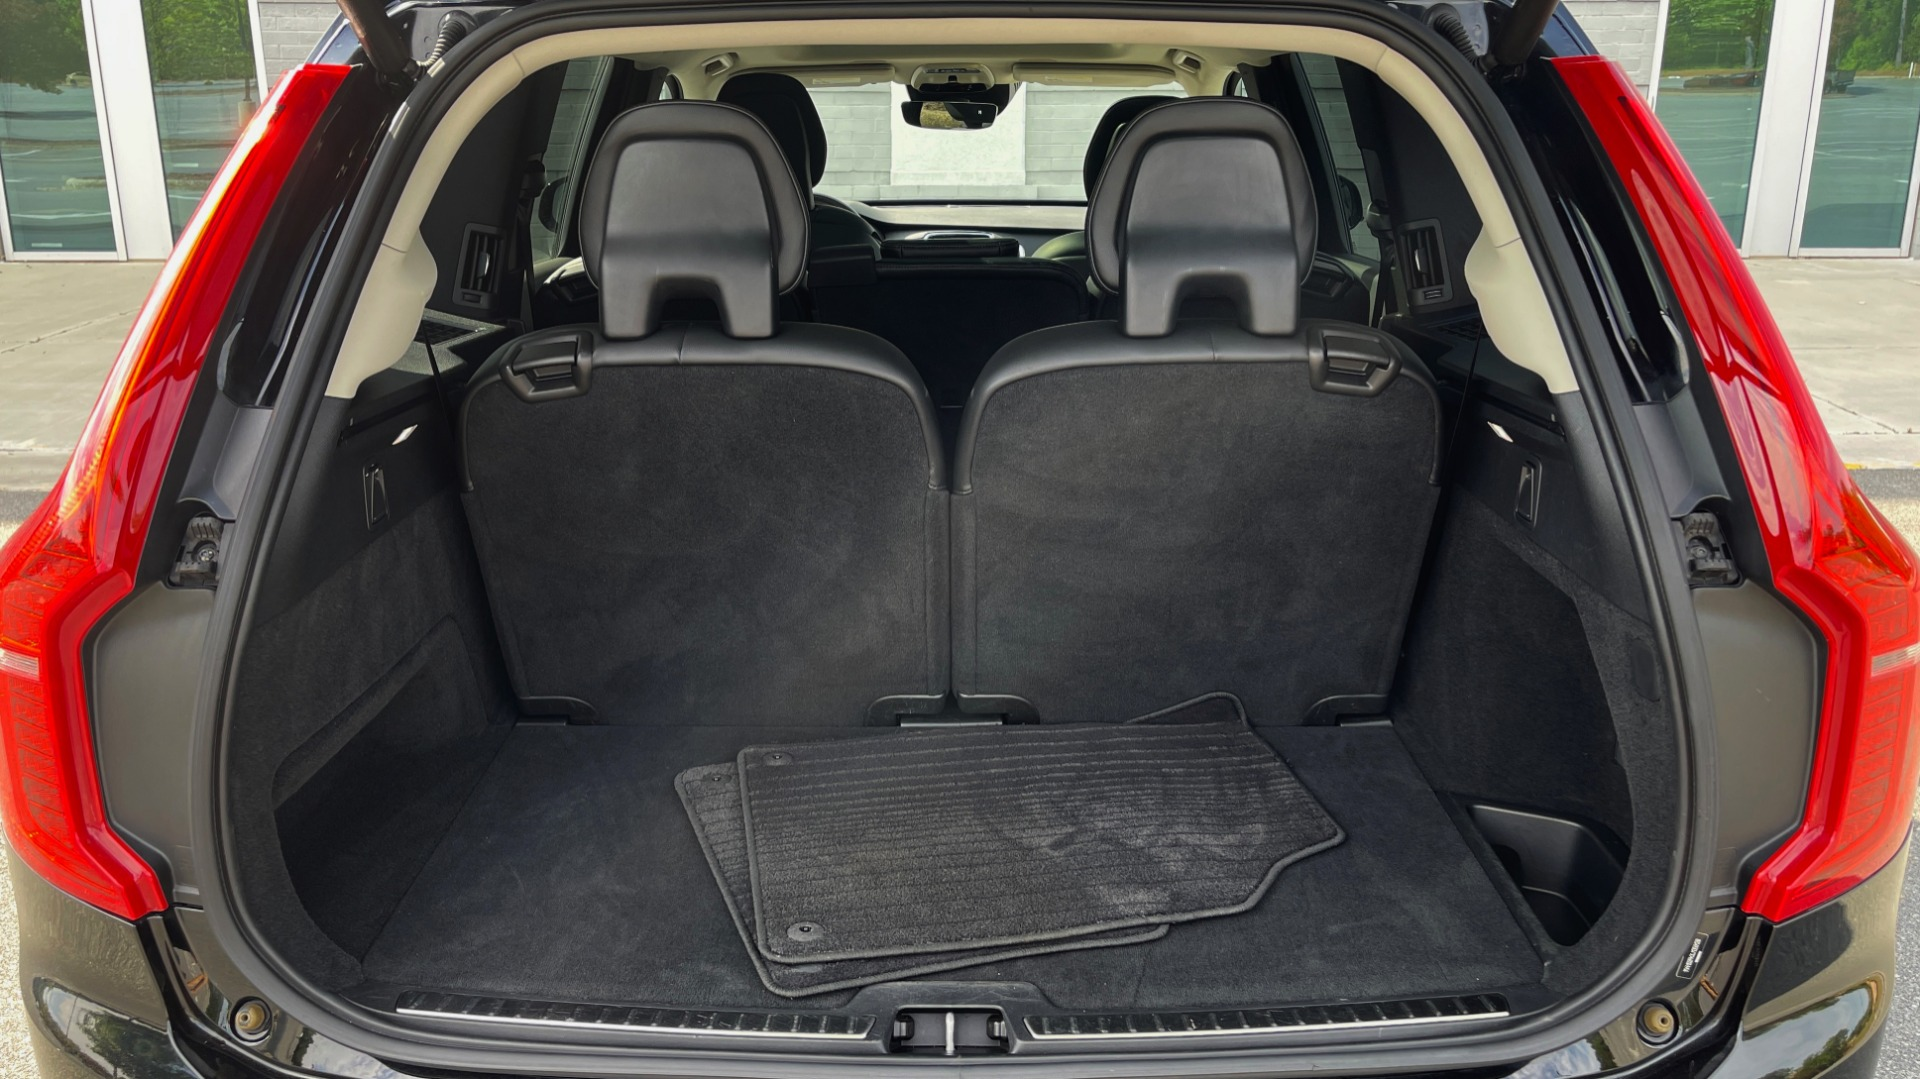 Used 2018 Volvo XC90 T5 AWD MOMENTUM PLUS / NAV / SUNROOF / 3-ROW / REARVIEW for sale $40,295 at Formula Imports in Charlotte NC 28227 24